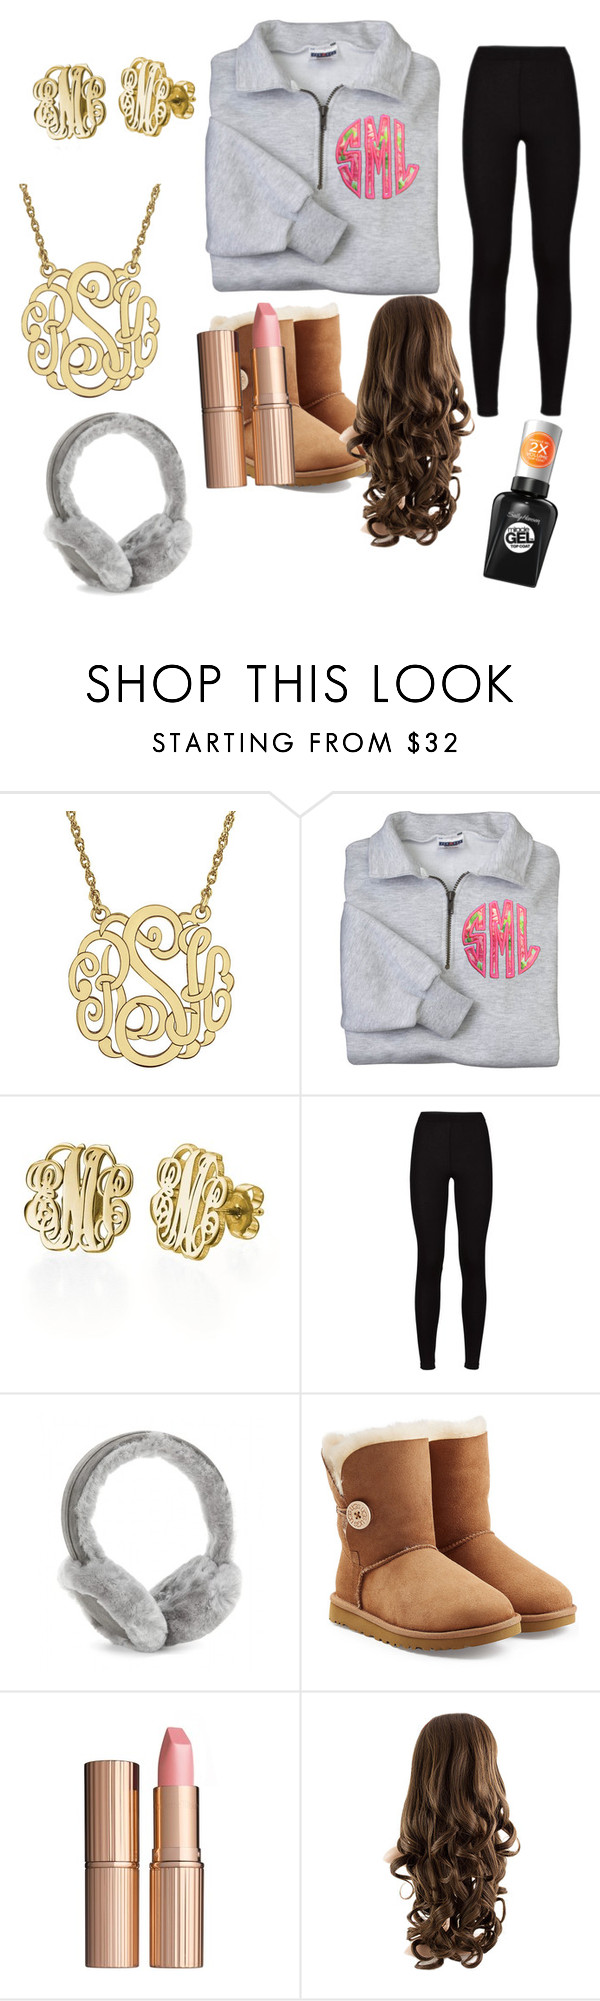 """""""Cold day"""" by libbyweitkamp ❤ liked on Polyvore featuring My Name Necklace, UGG Australia, Charlotte Tilbury and Sally Hansen"""